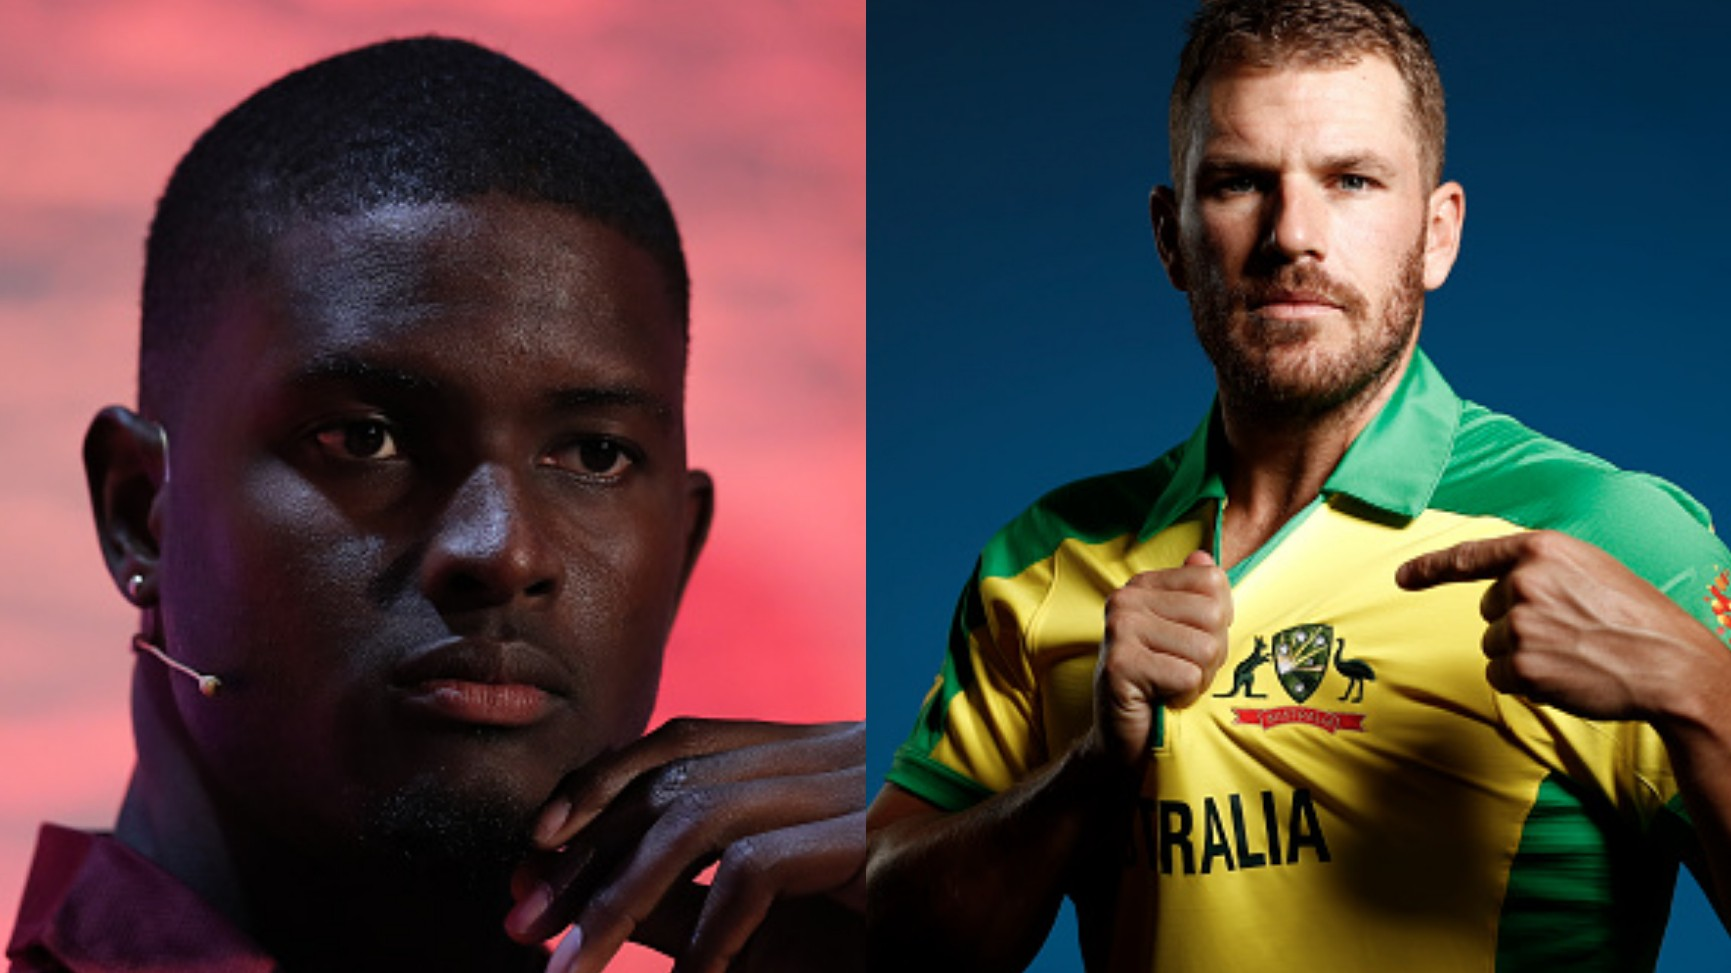 CWC 2019: Jason Holder excited for World Cup, while Aaron Finch calls England and India favorites